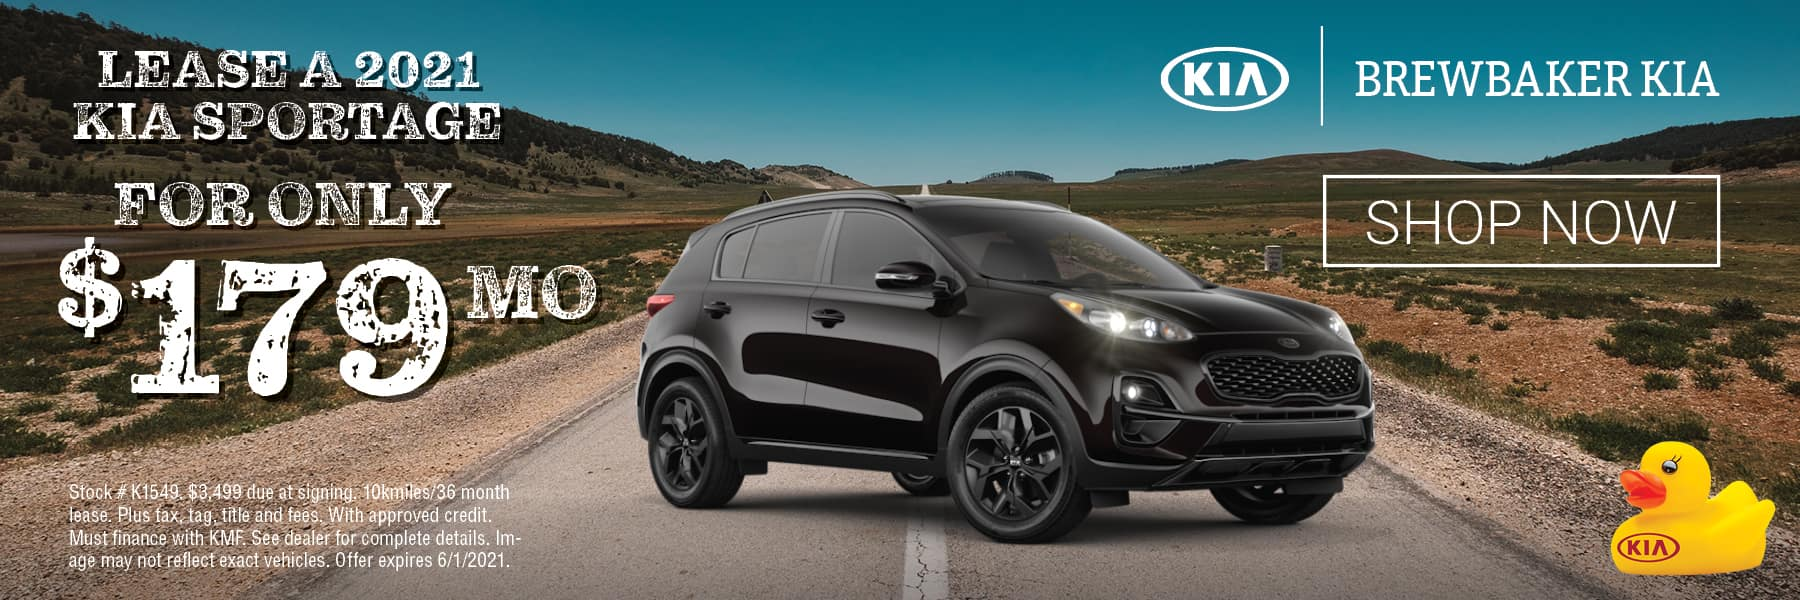 Kia_Sportage_May_1800x600 (1)